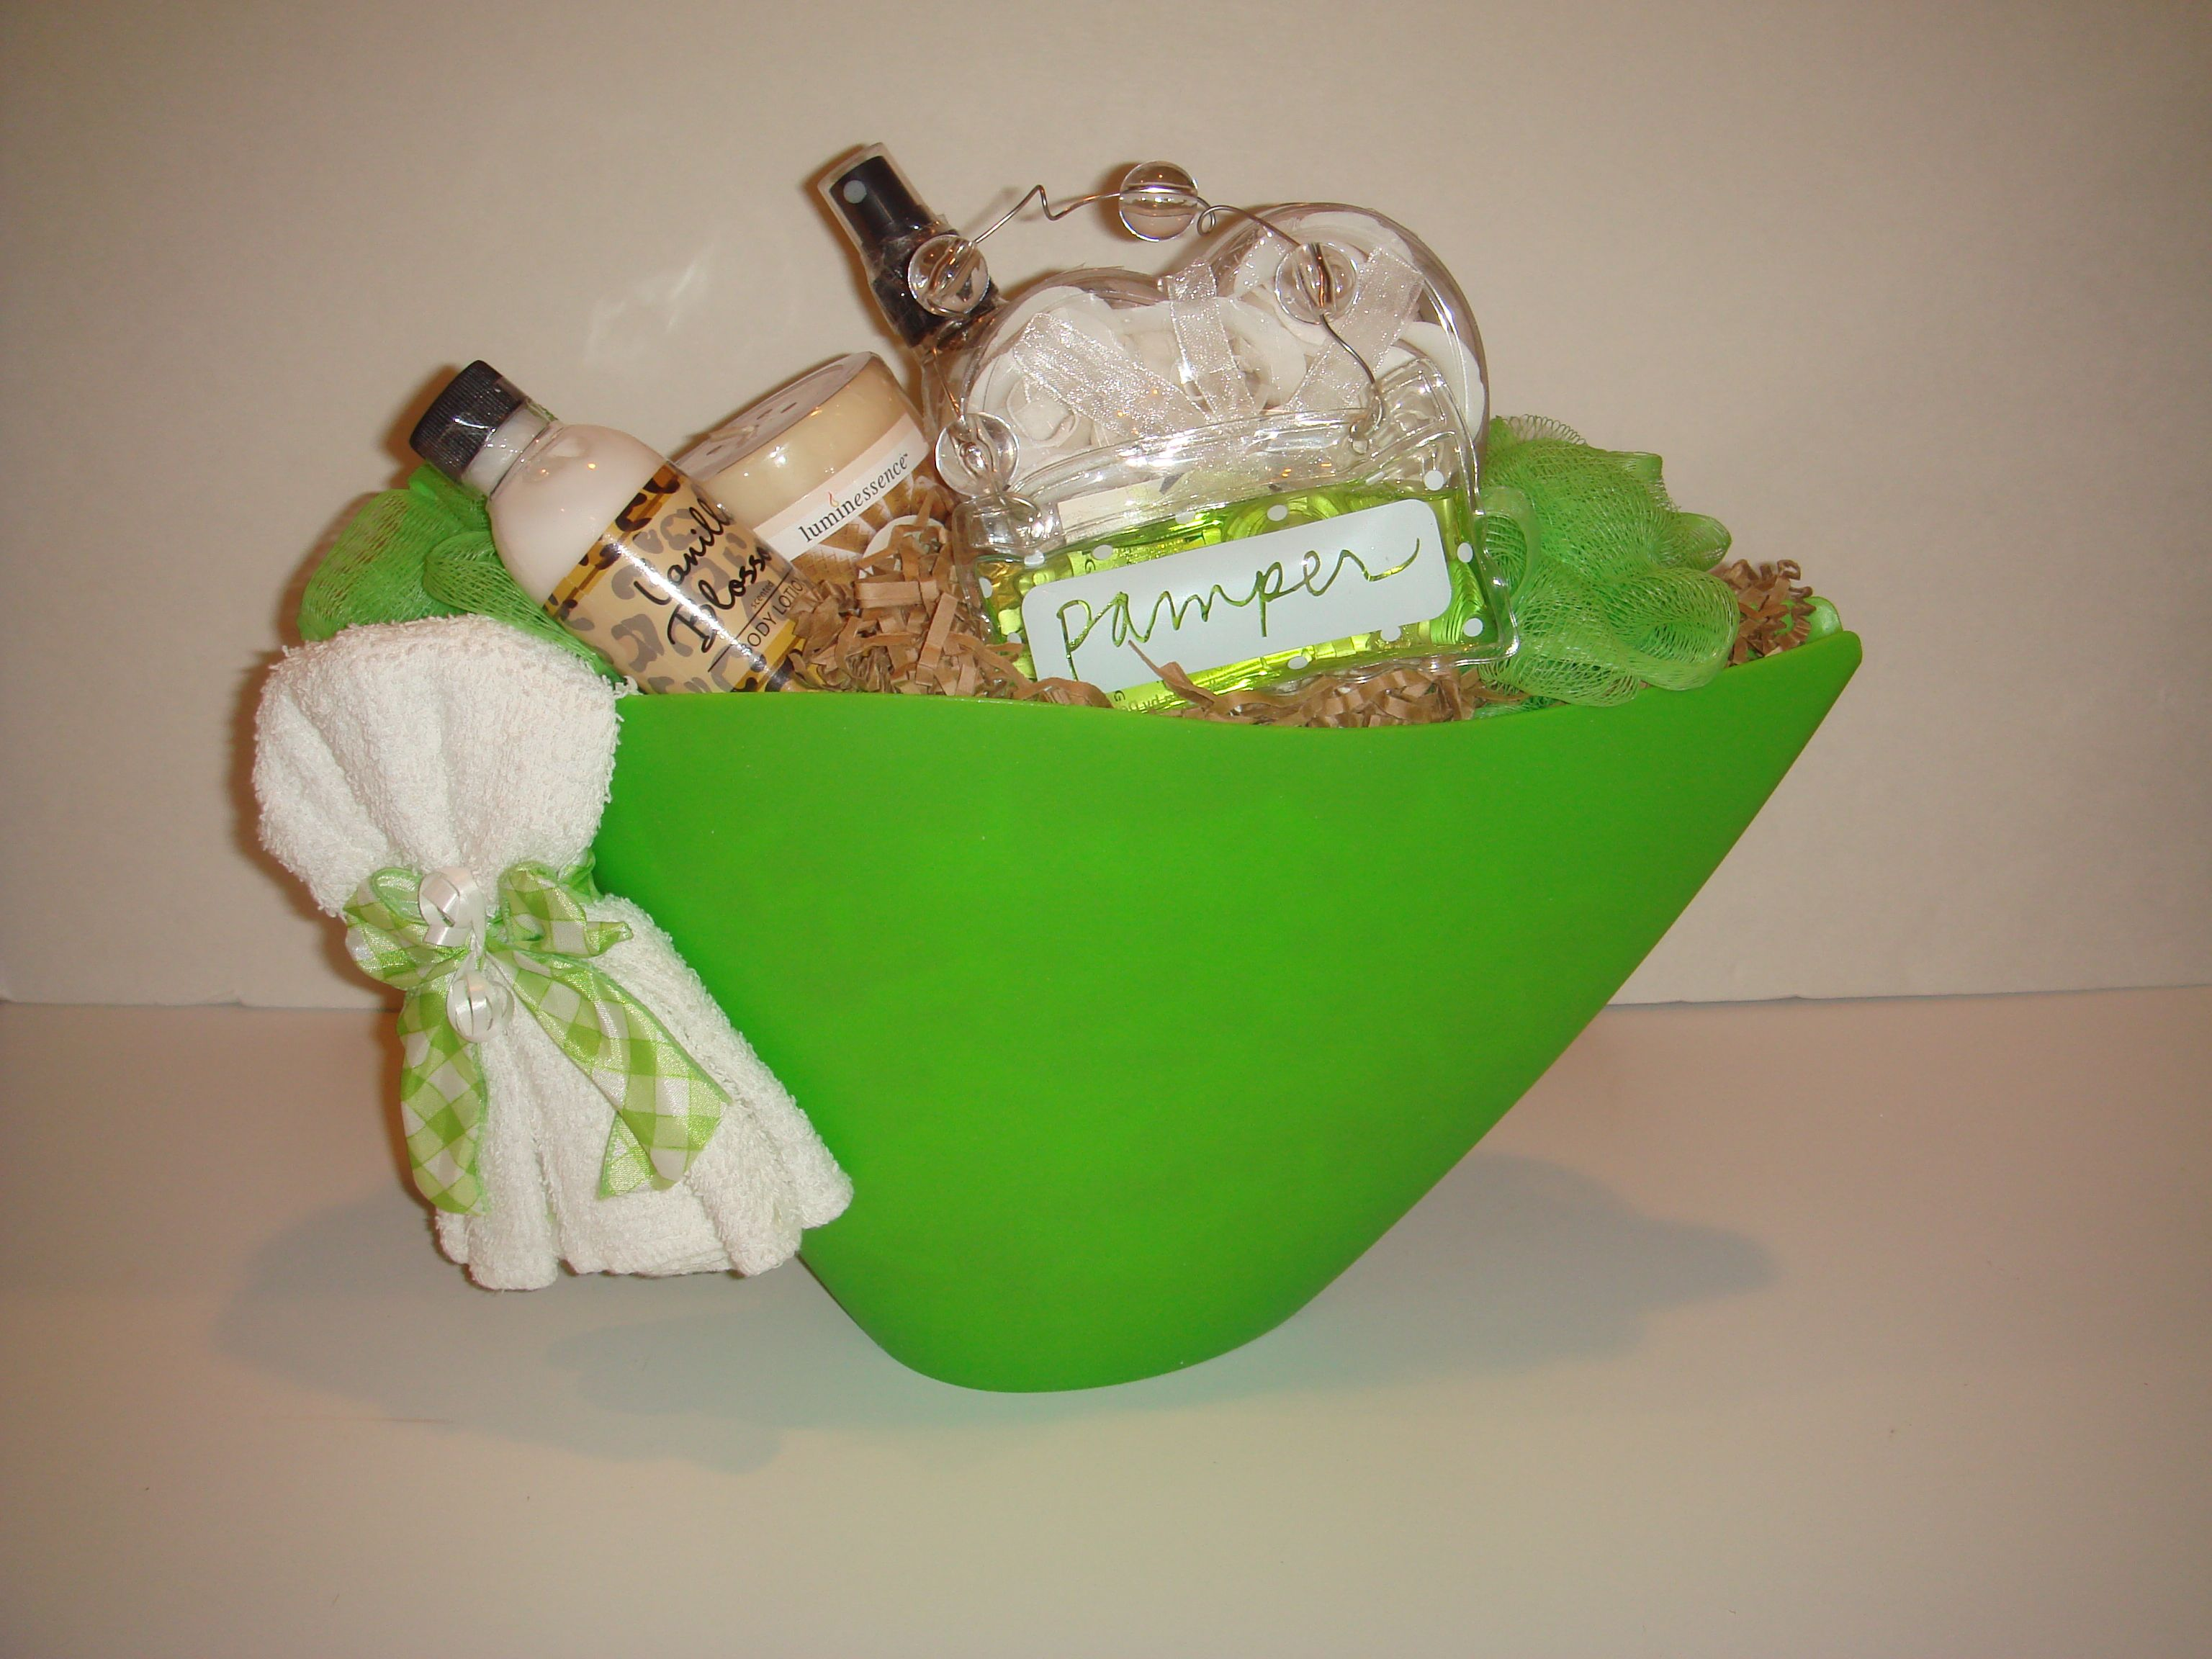 Pamper yourself spa gift diaper cakes pinterest spa gifts pamper yourself spa gift solutioingenieria Gallery